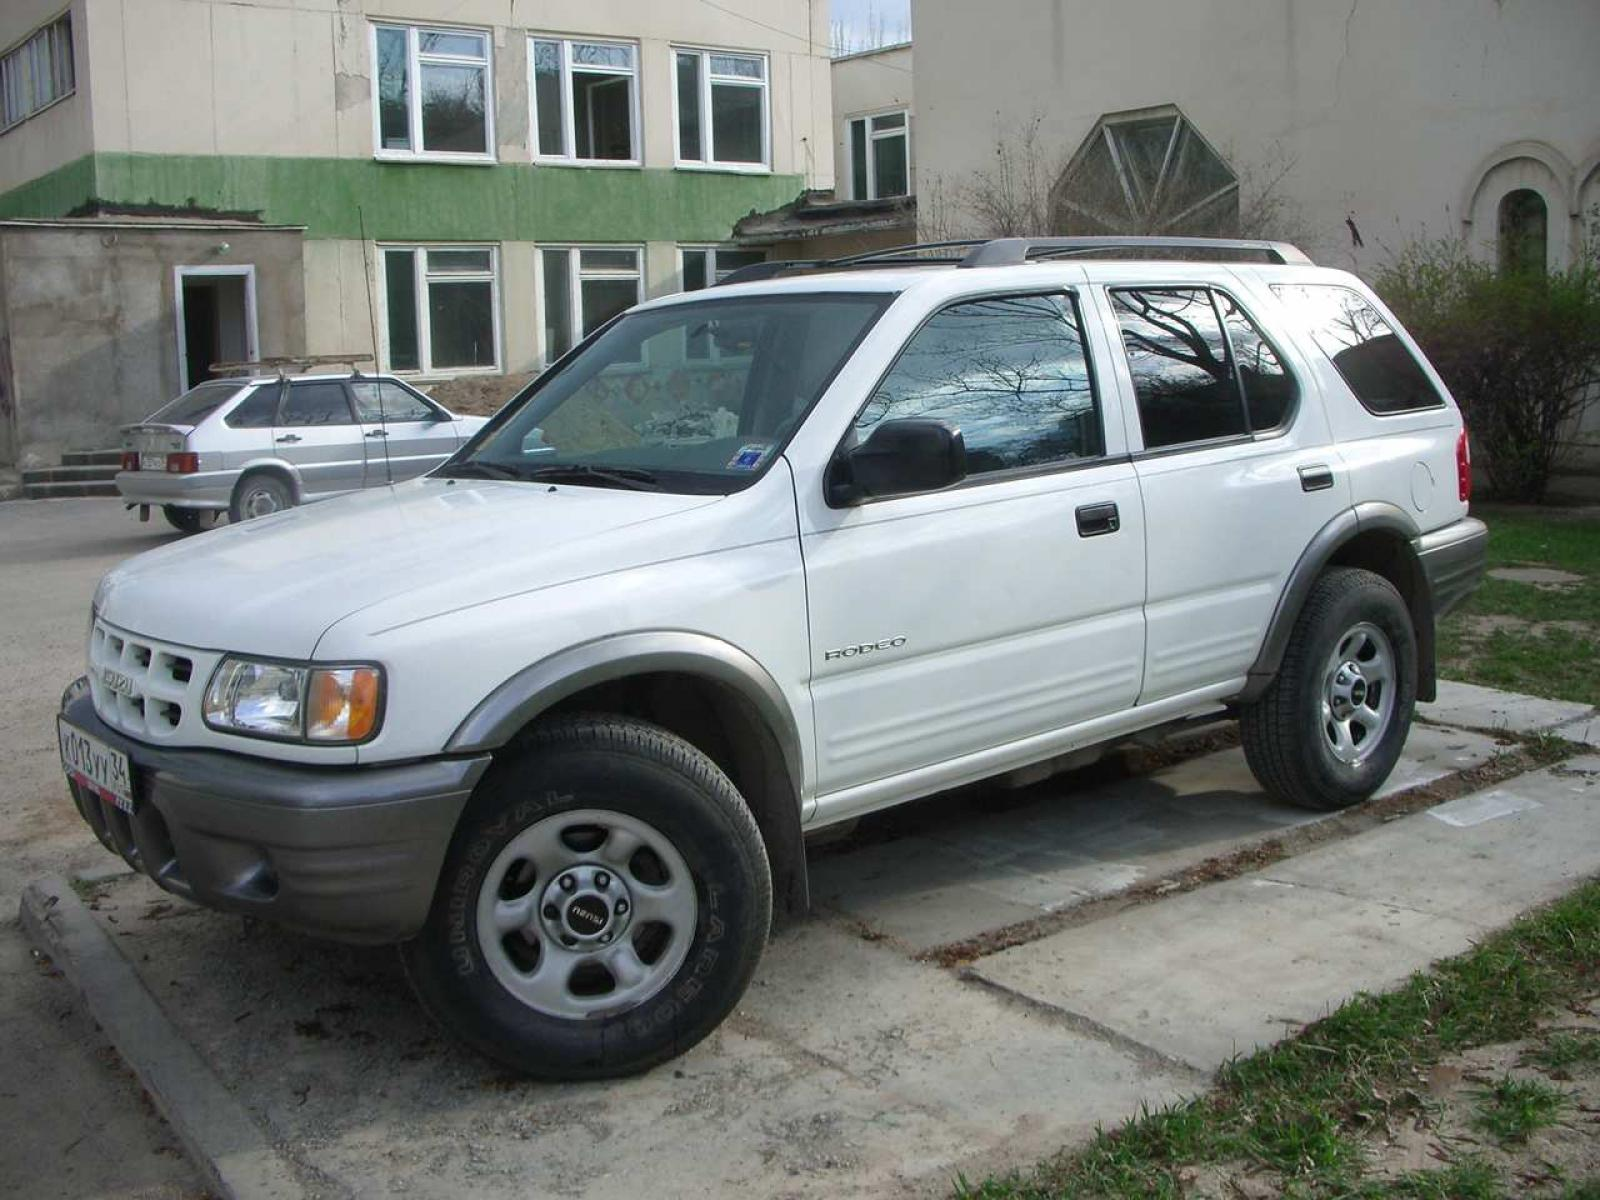 Captivating 800 1024 1280 1600 Origin 2001 Isuzu Rodeo ...